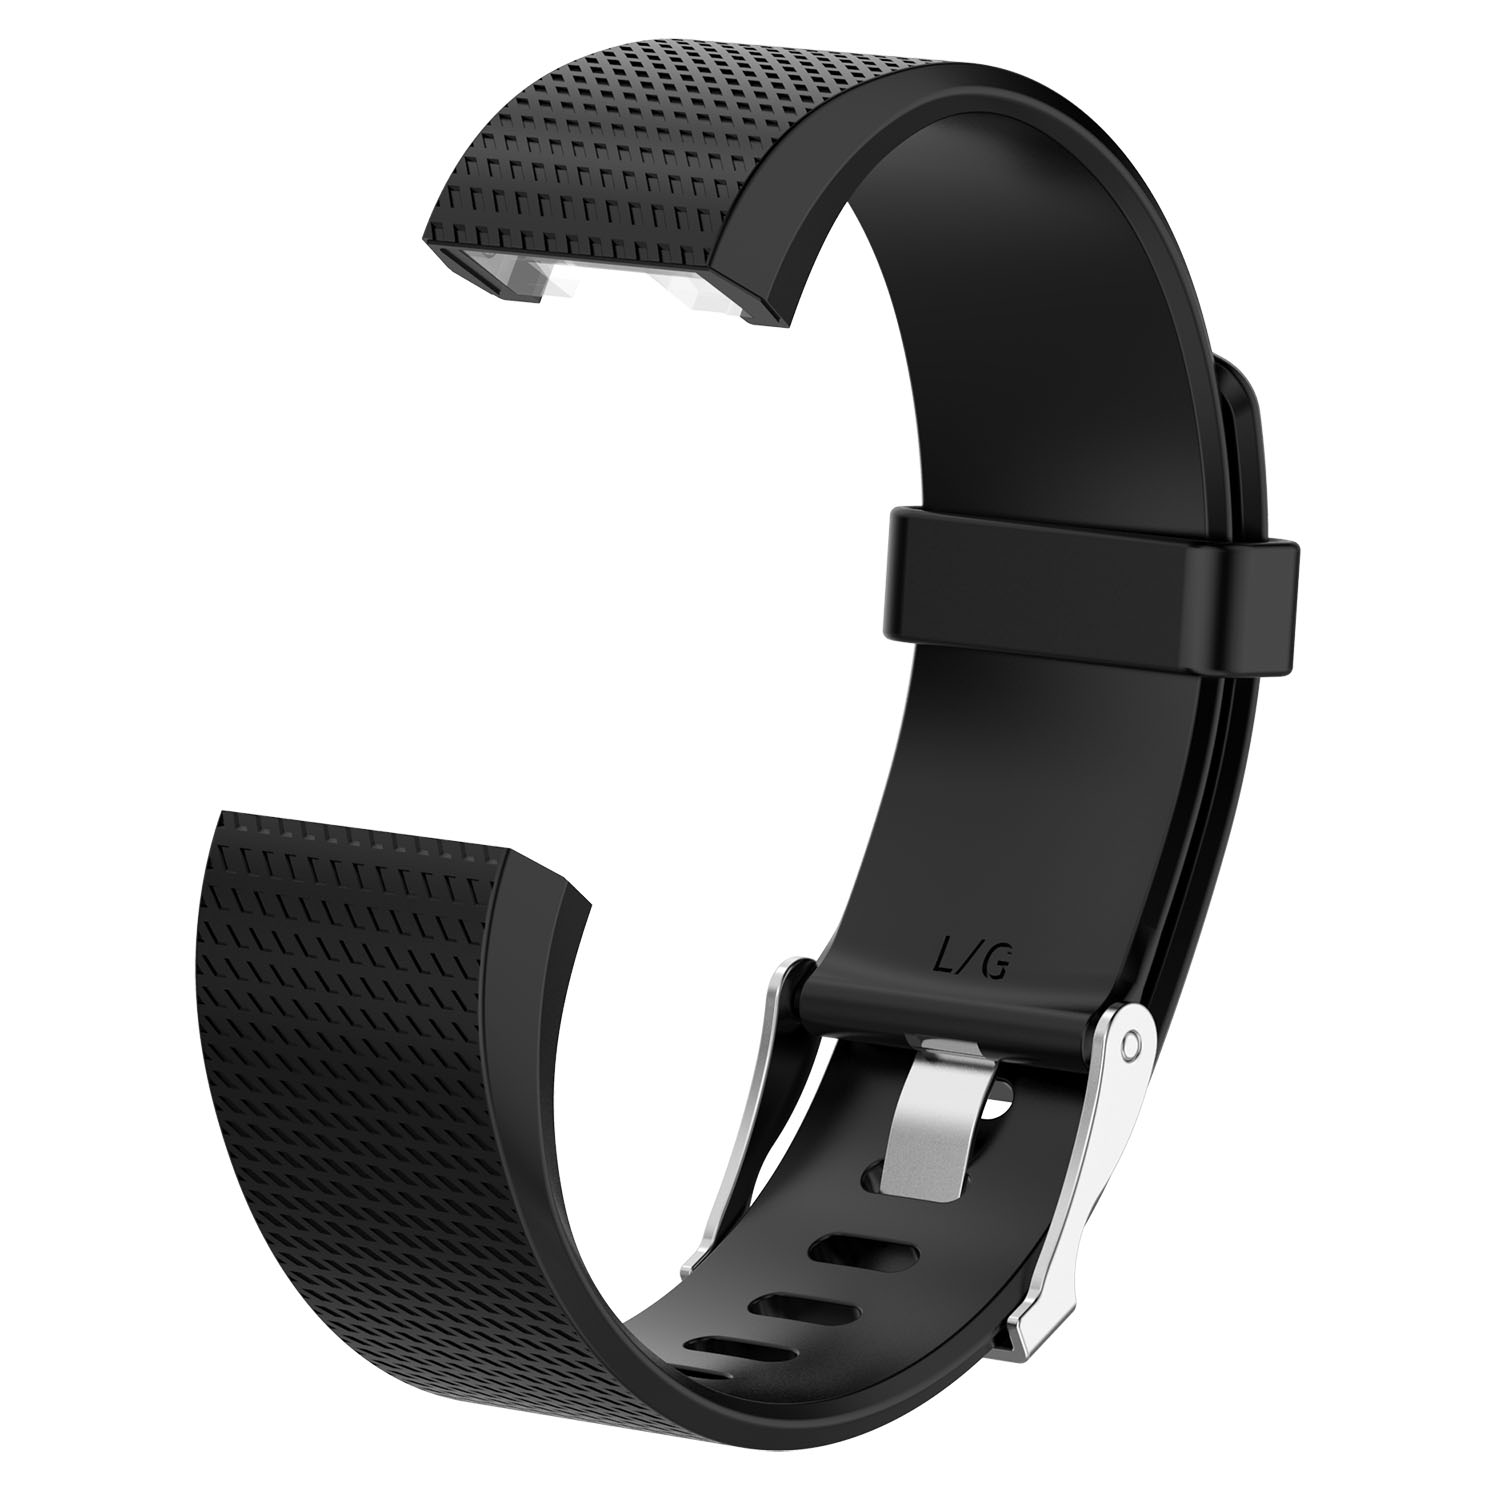 Replacement-Silicone-Wristband-Watch-Strap-Bands-Bracelet-For-Fitbit-Charge-2 thumbnail 14